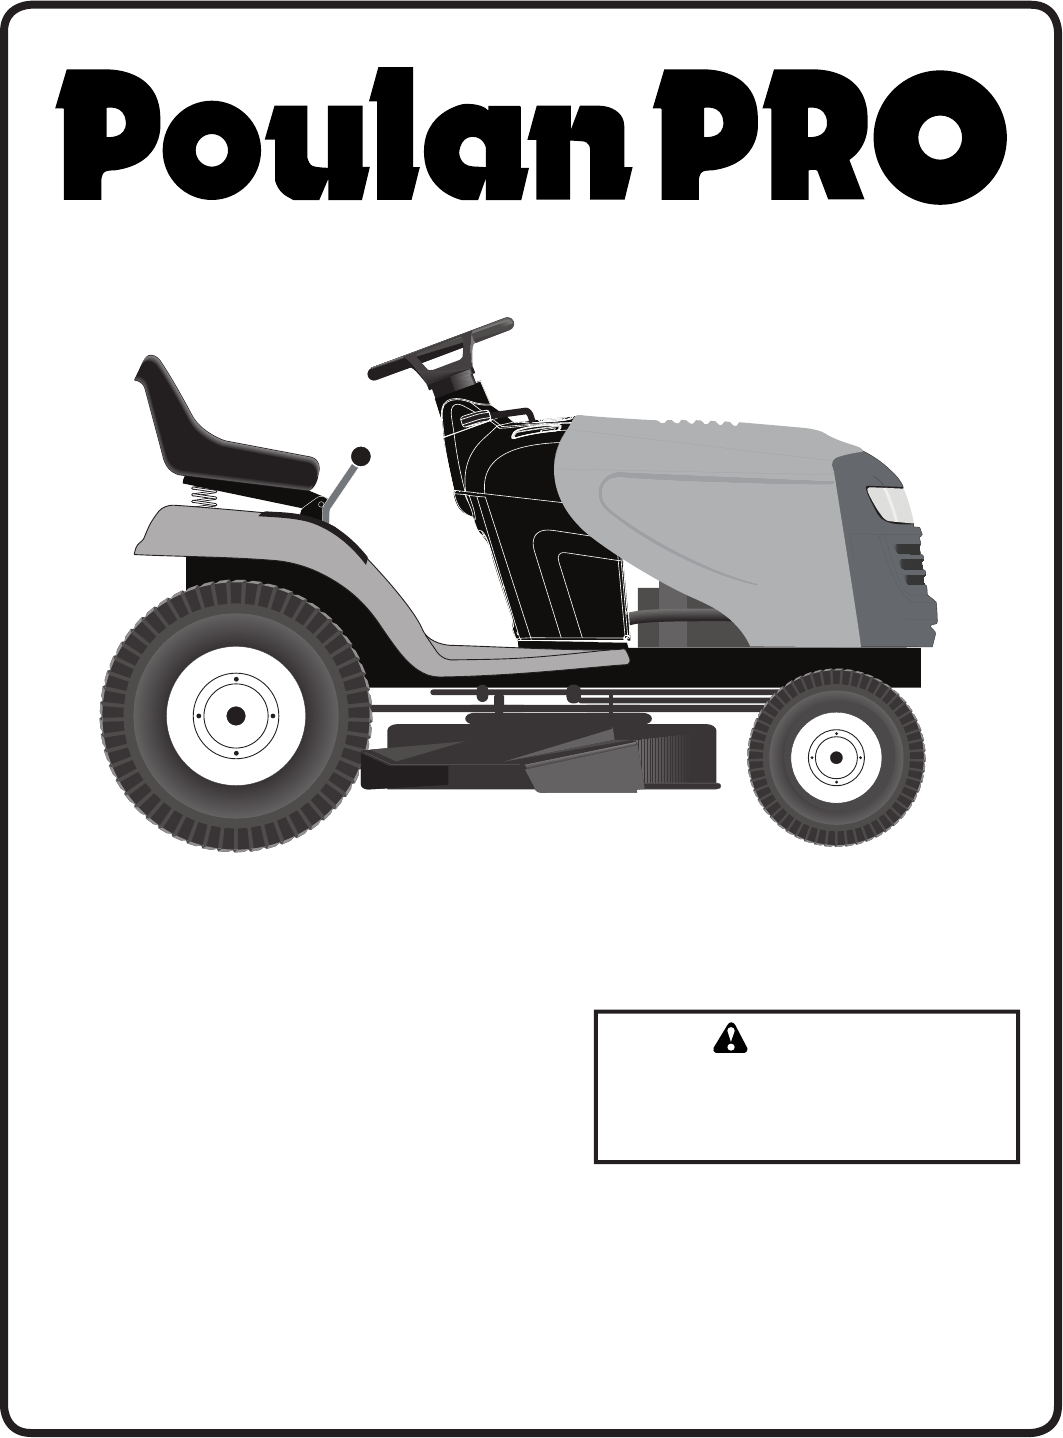 Poulan Pro Pb195a42lt Users Manual Om 2010 10 Tractors Riding Lawn Mower Wiring Diagram Ride Mowers 96048000400